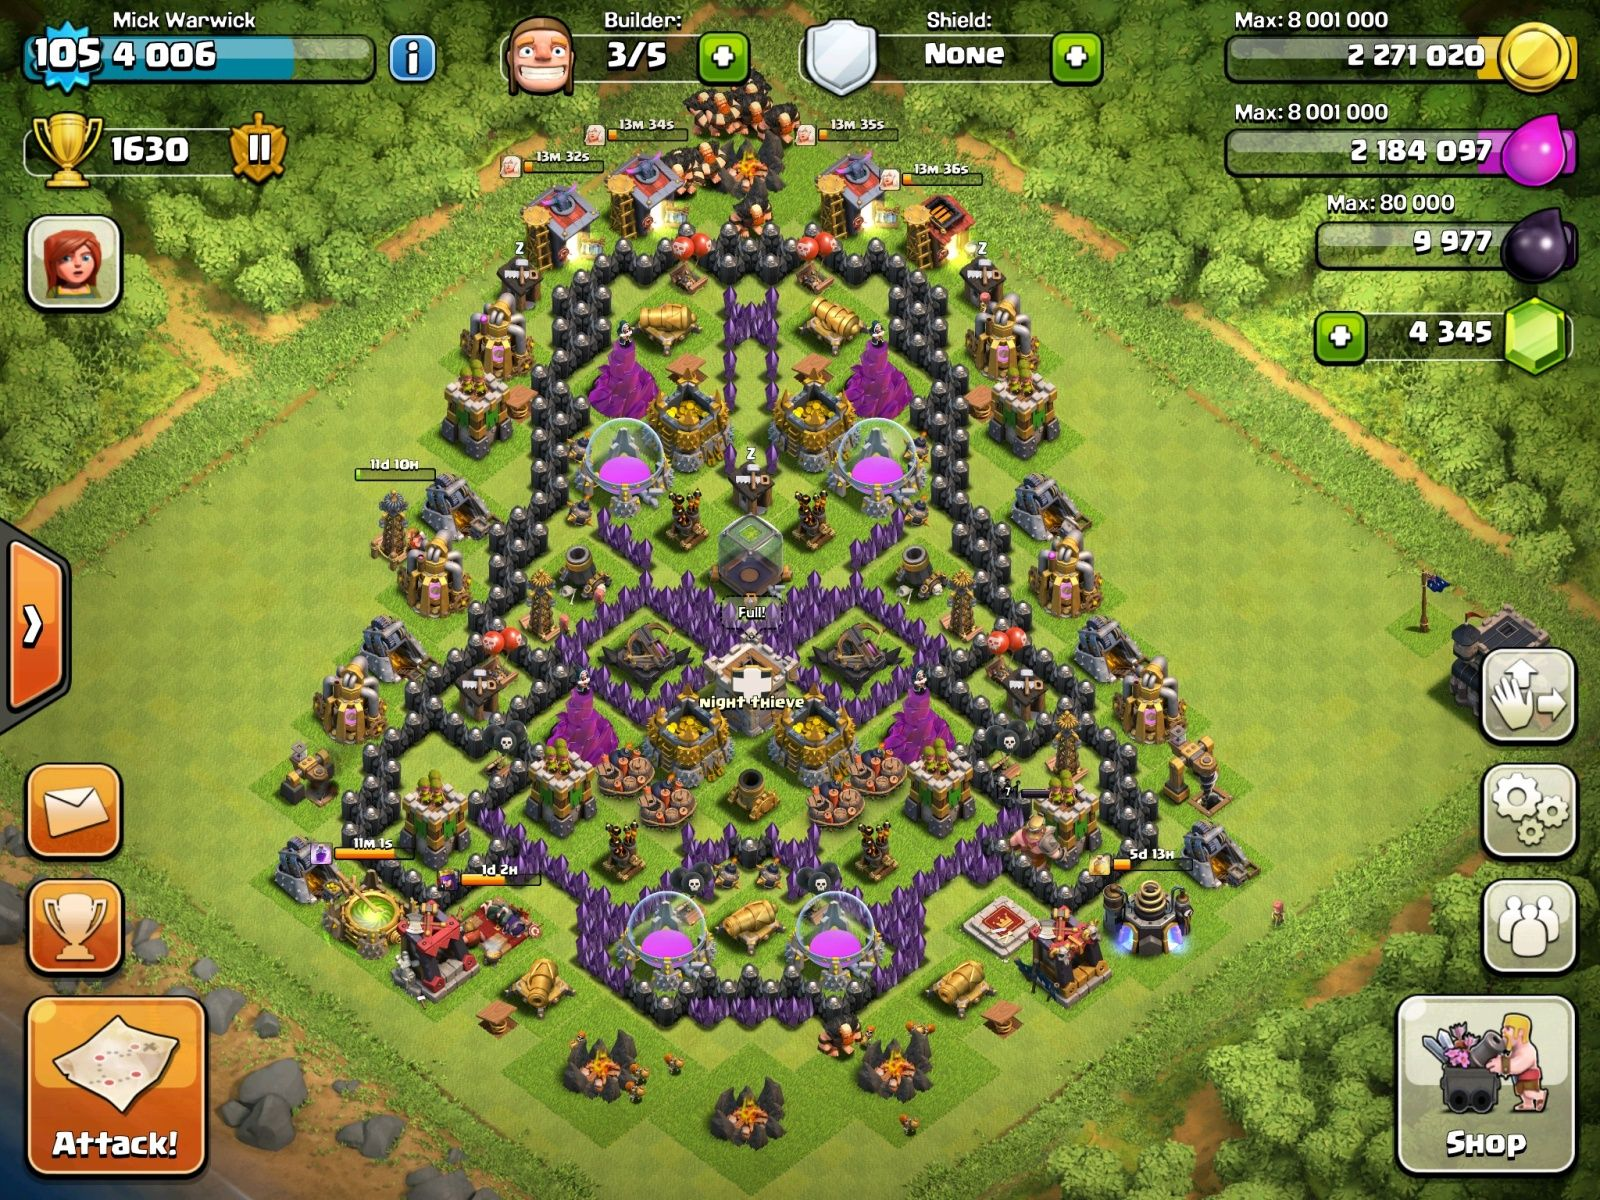 Pin By Nate L On Coc Pinterest Clash Of Clans Photos And Edit